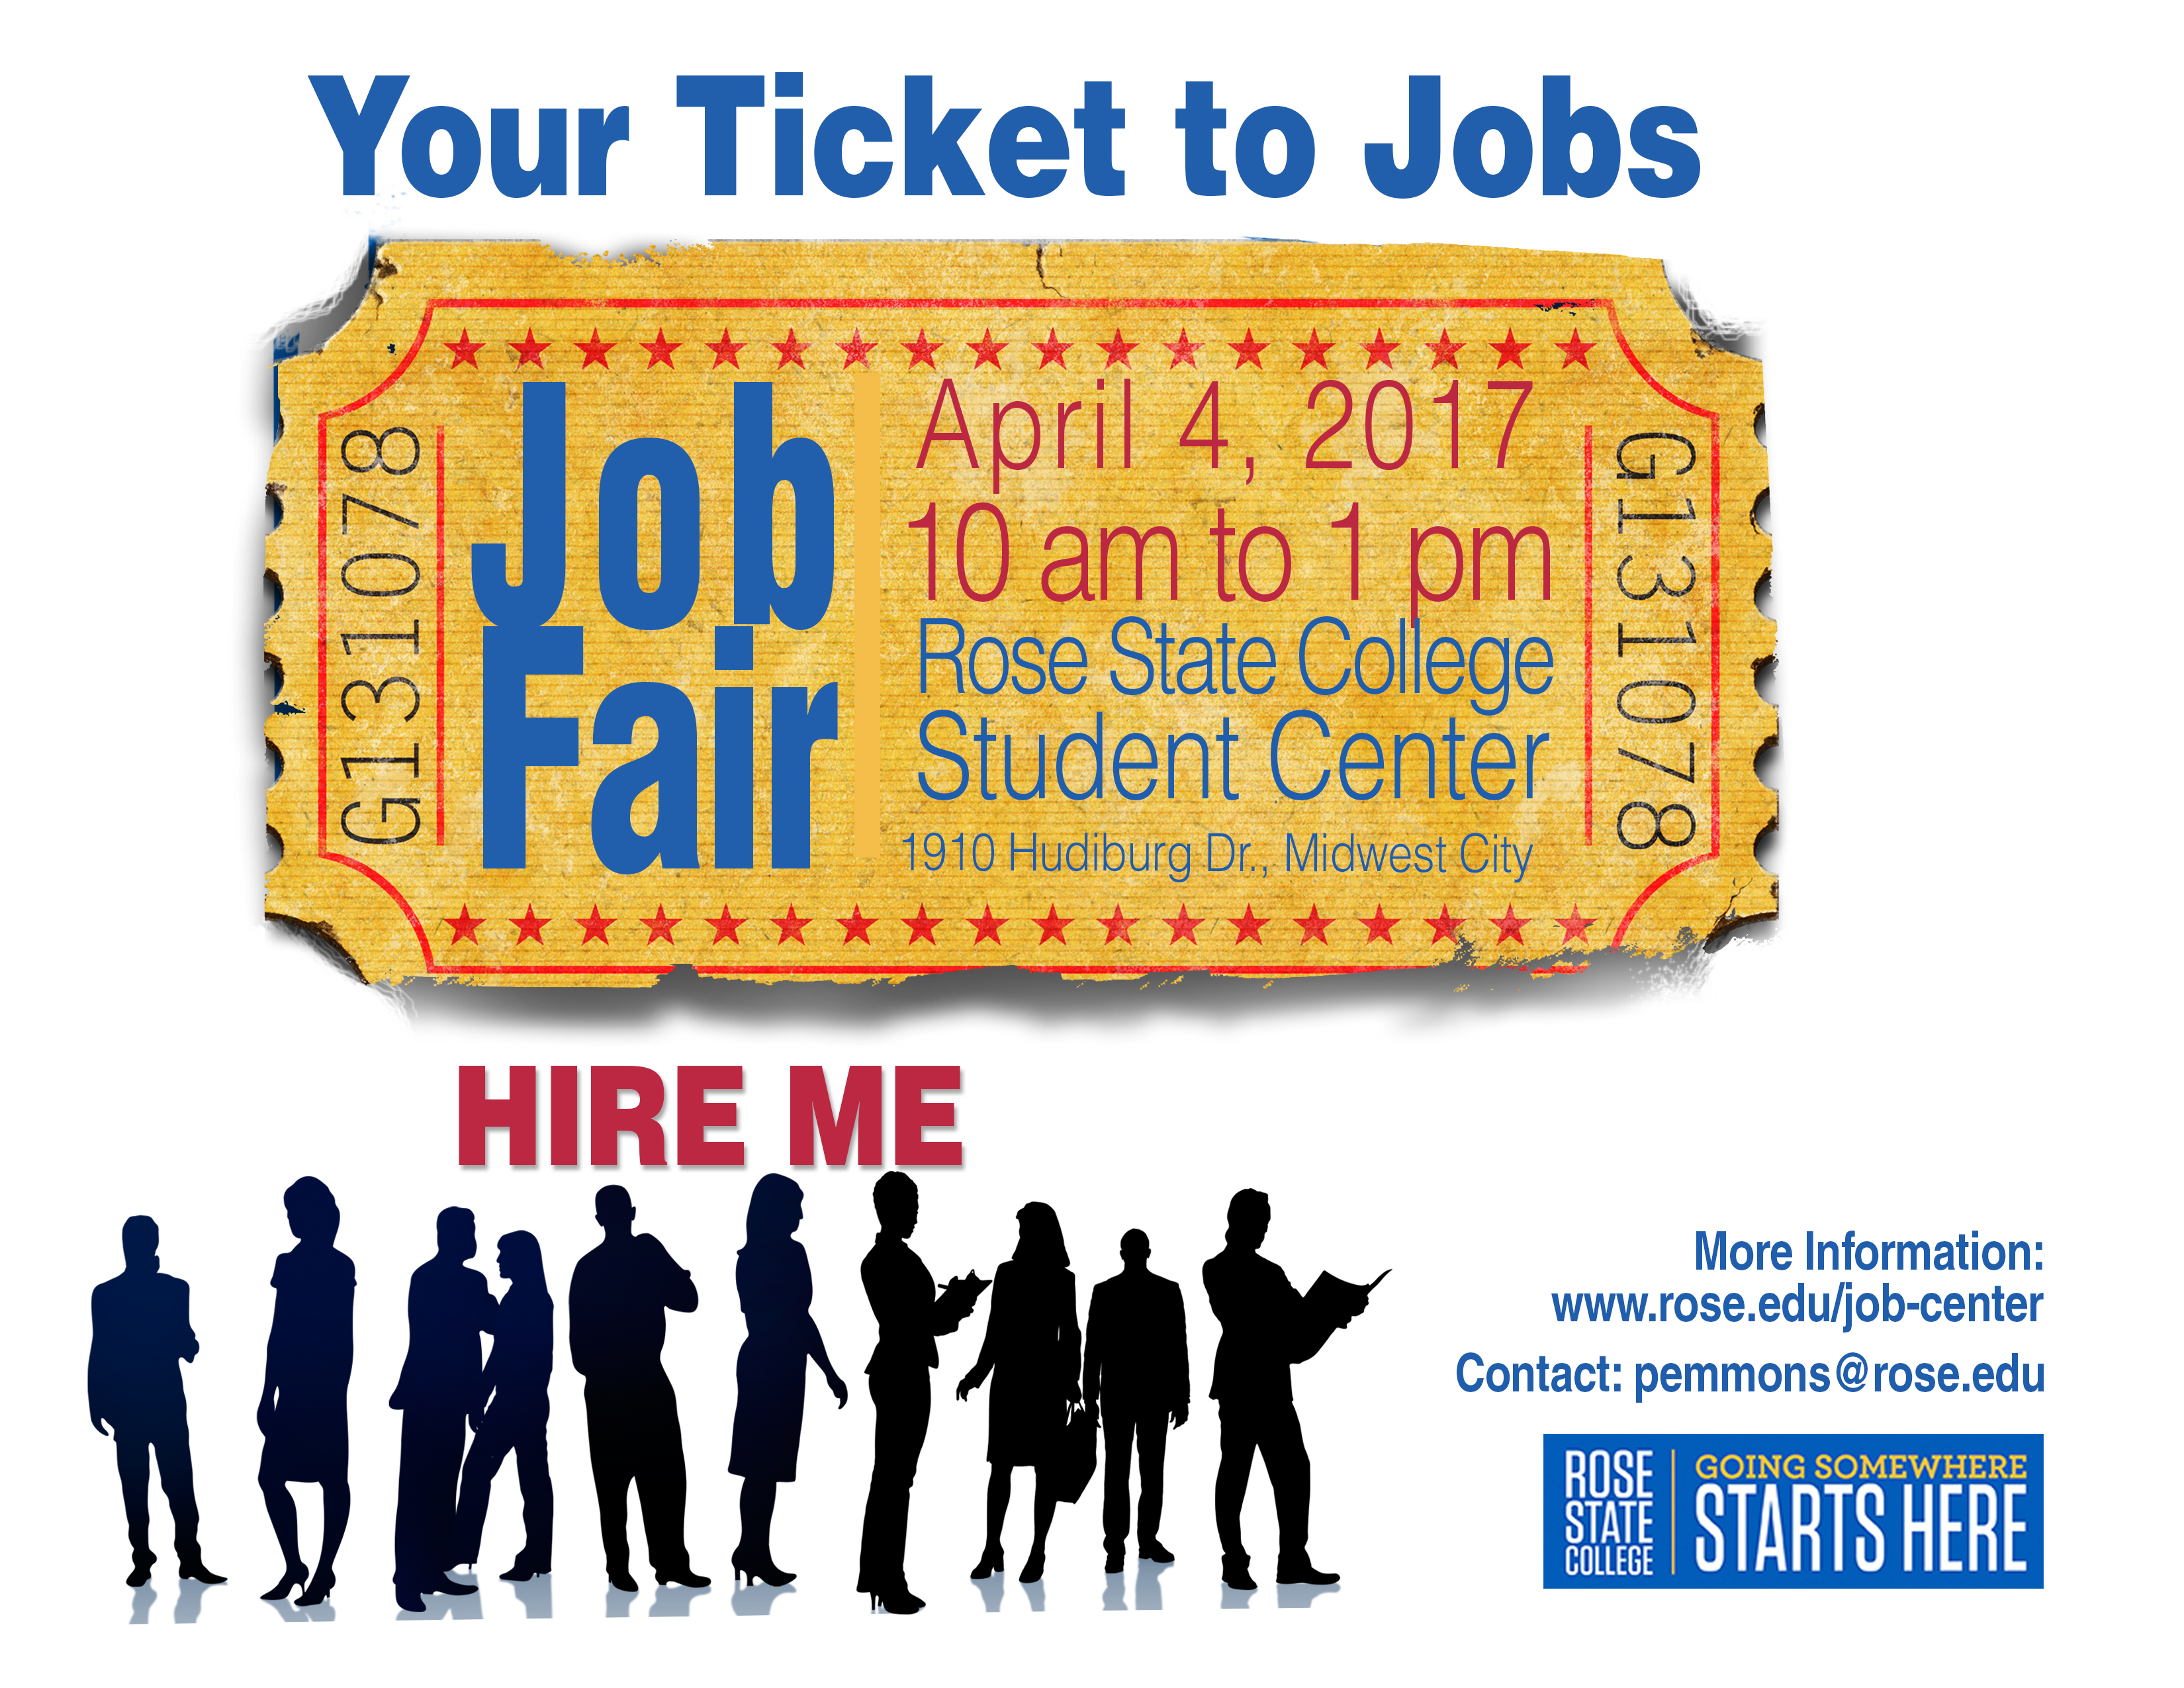 Job Fair graphic showing a ticket with date of April 4, 2017